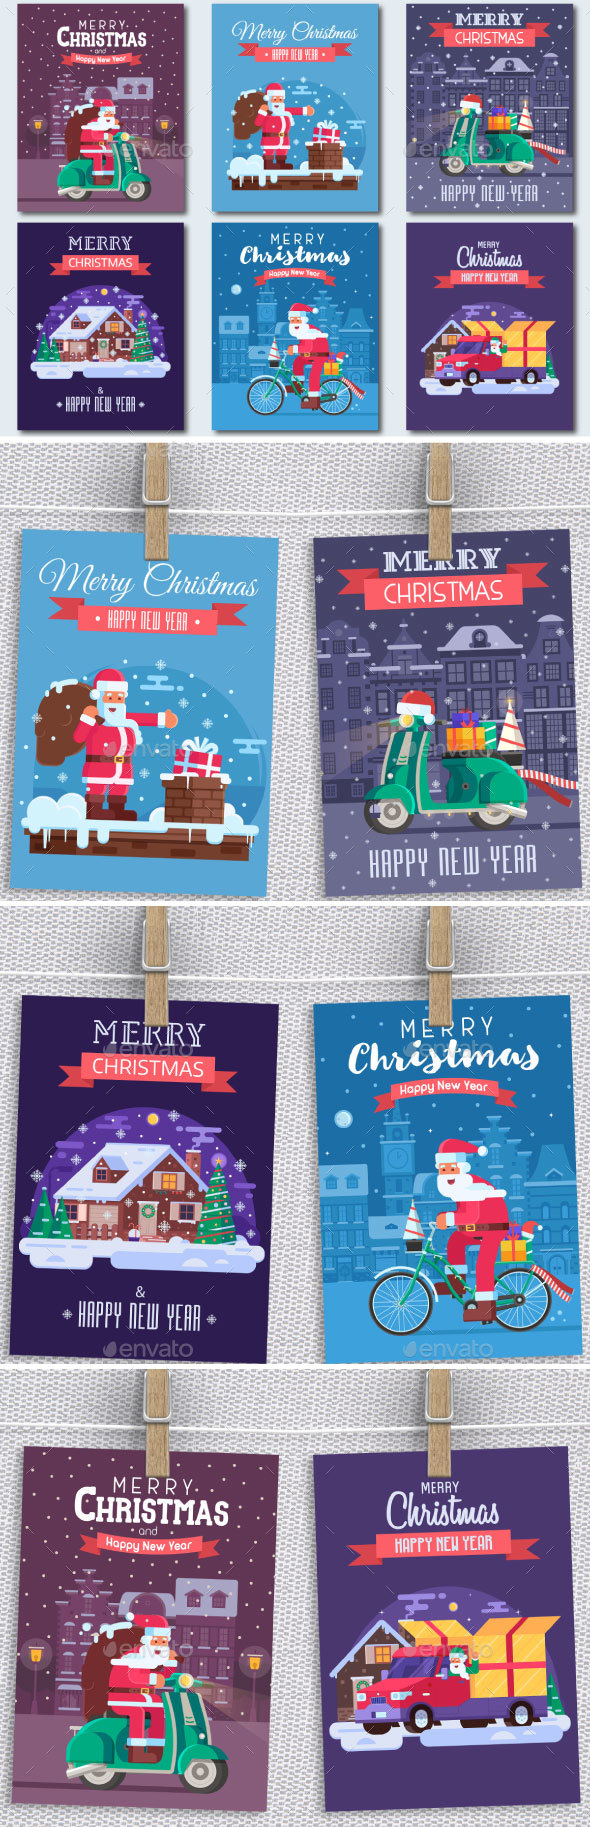 Christmas Cards Set with Santa Delivering Gifts - Vectors